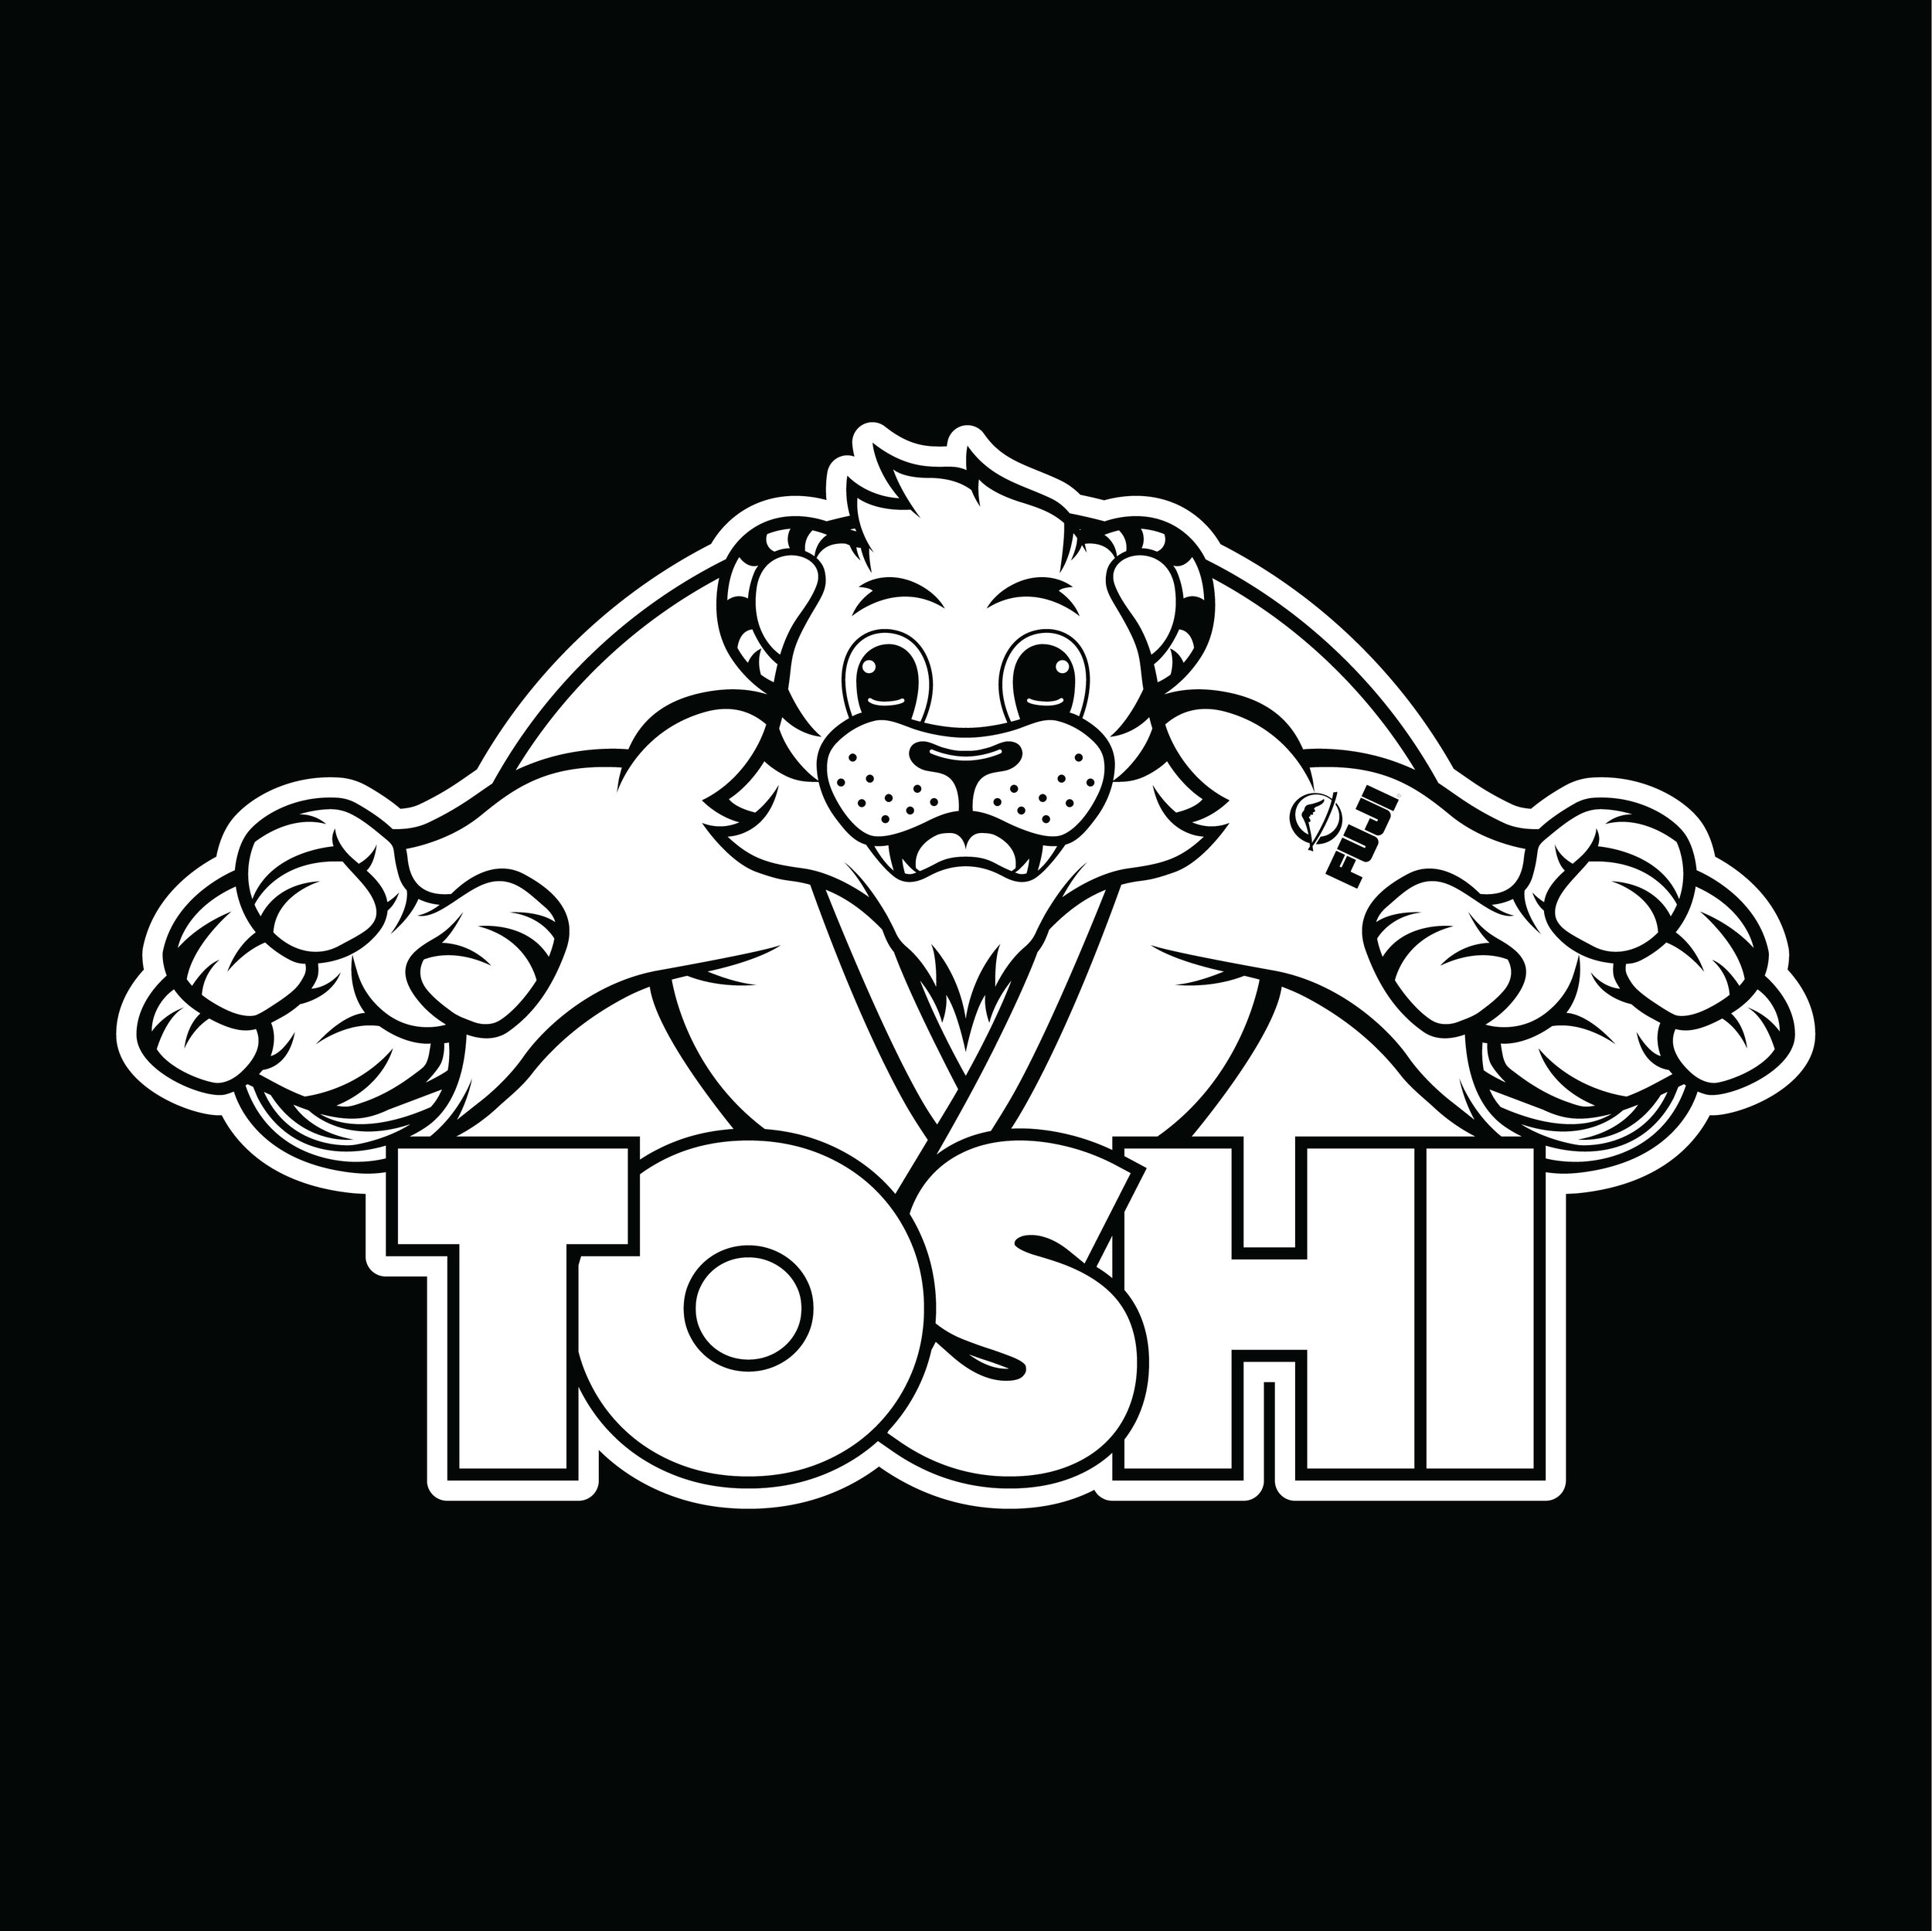 orozcodesign-Fuji-Toshi-Gi-Illustration-Final _White Toshi.jpg